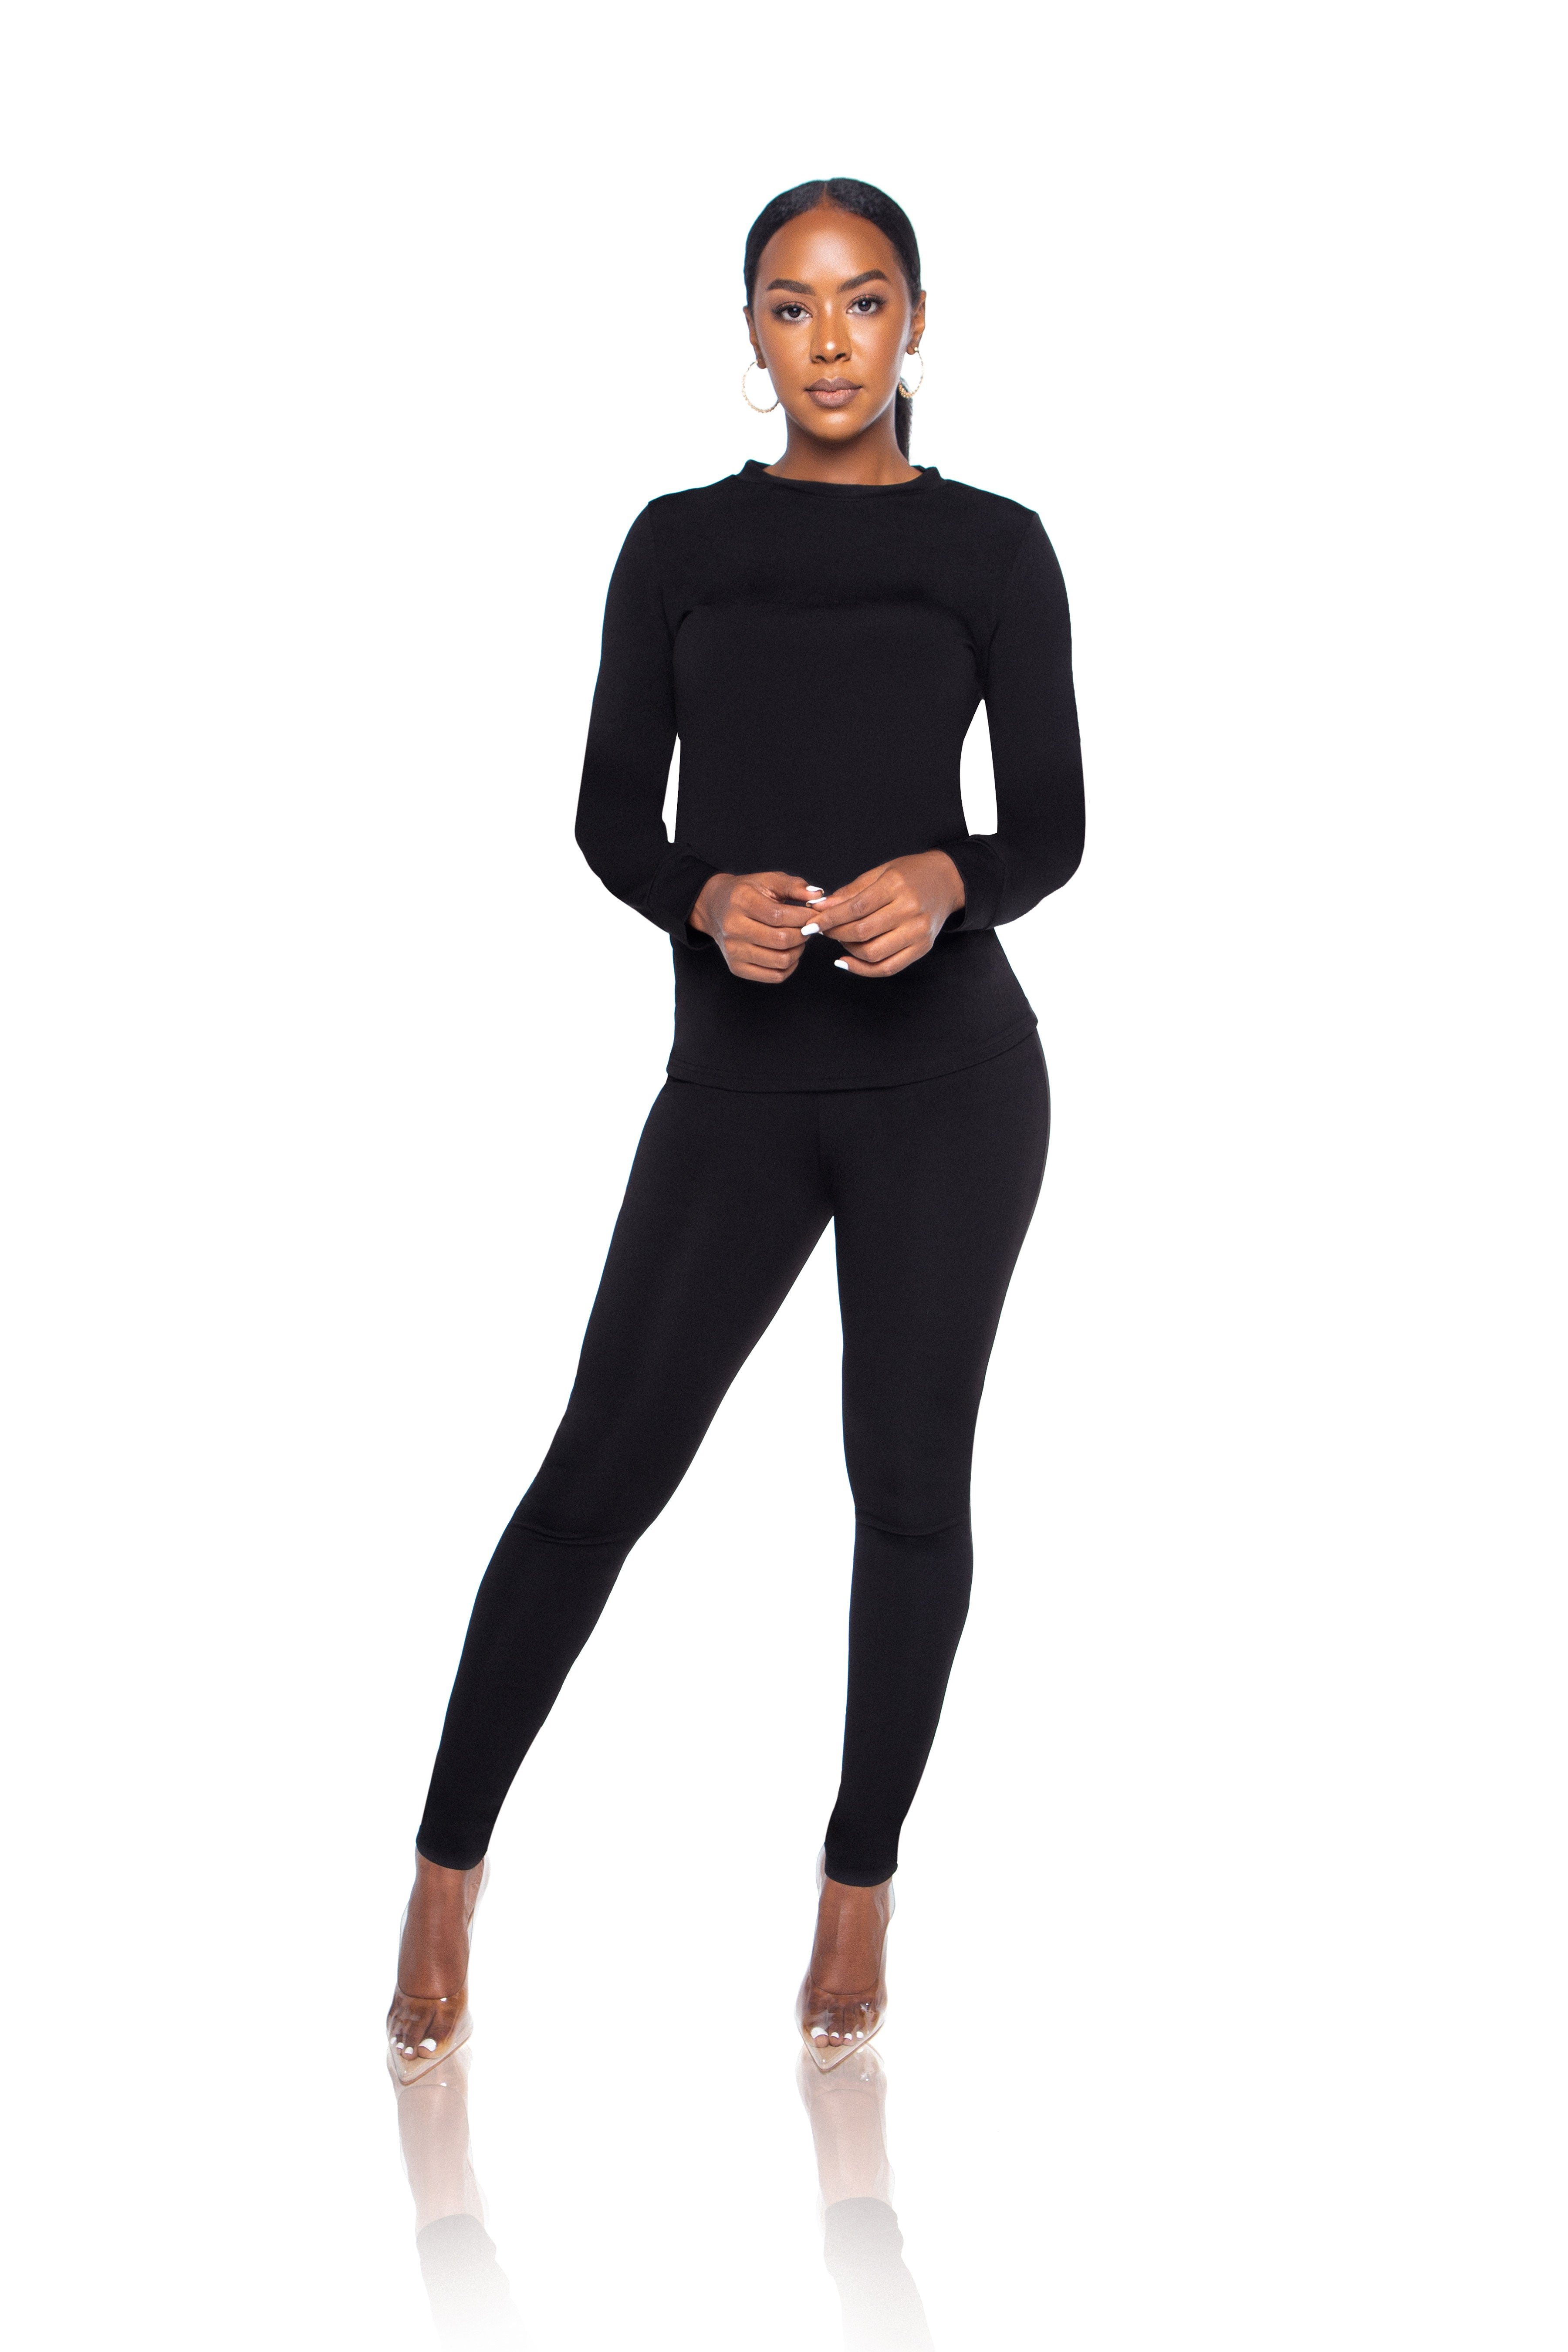 Aubrey Top - Black - ShopLuvB